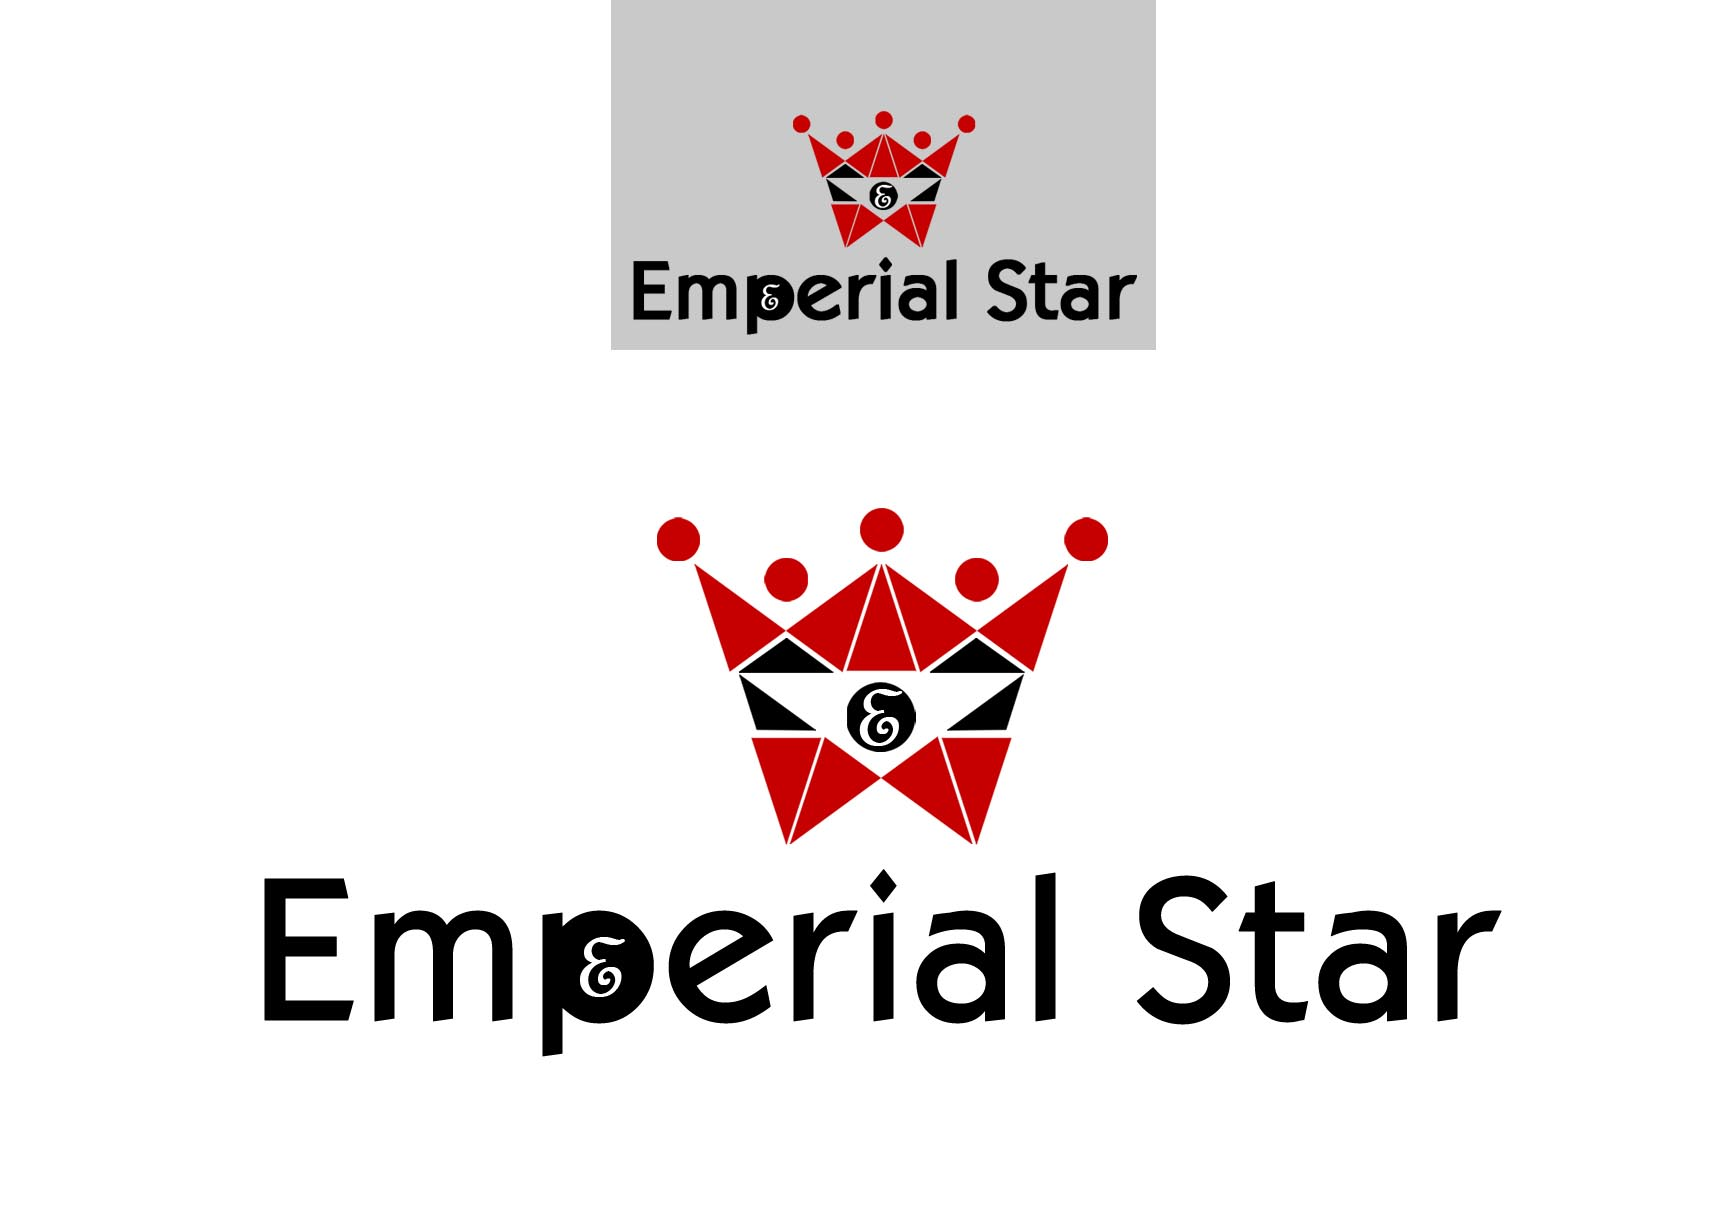 Logo Design by Cesar III Sotto - Entry No. 72 in the Logo Design Contest Emperial Star Logo Design.